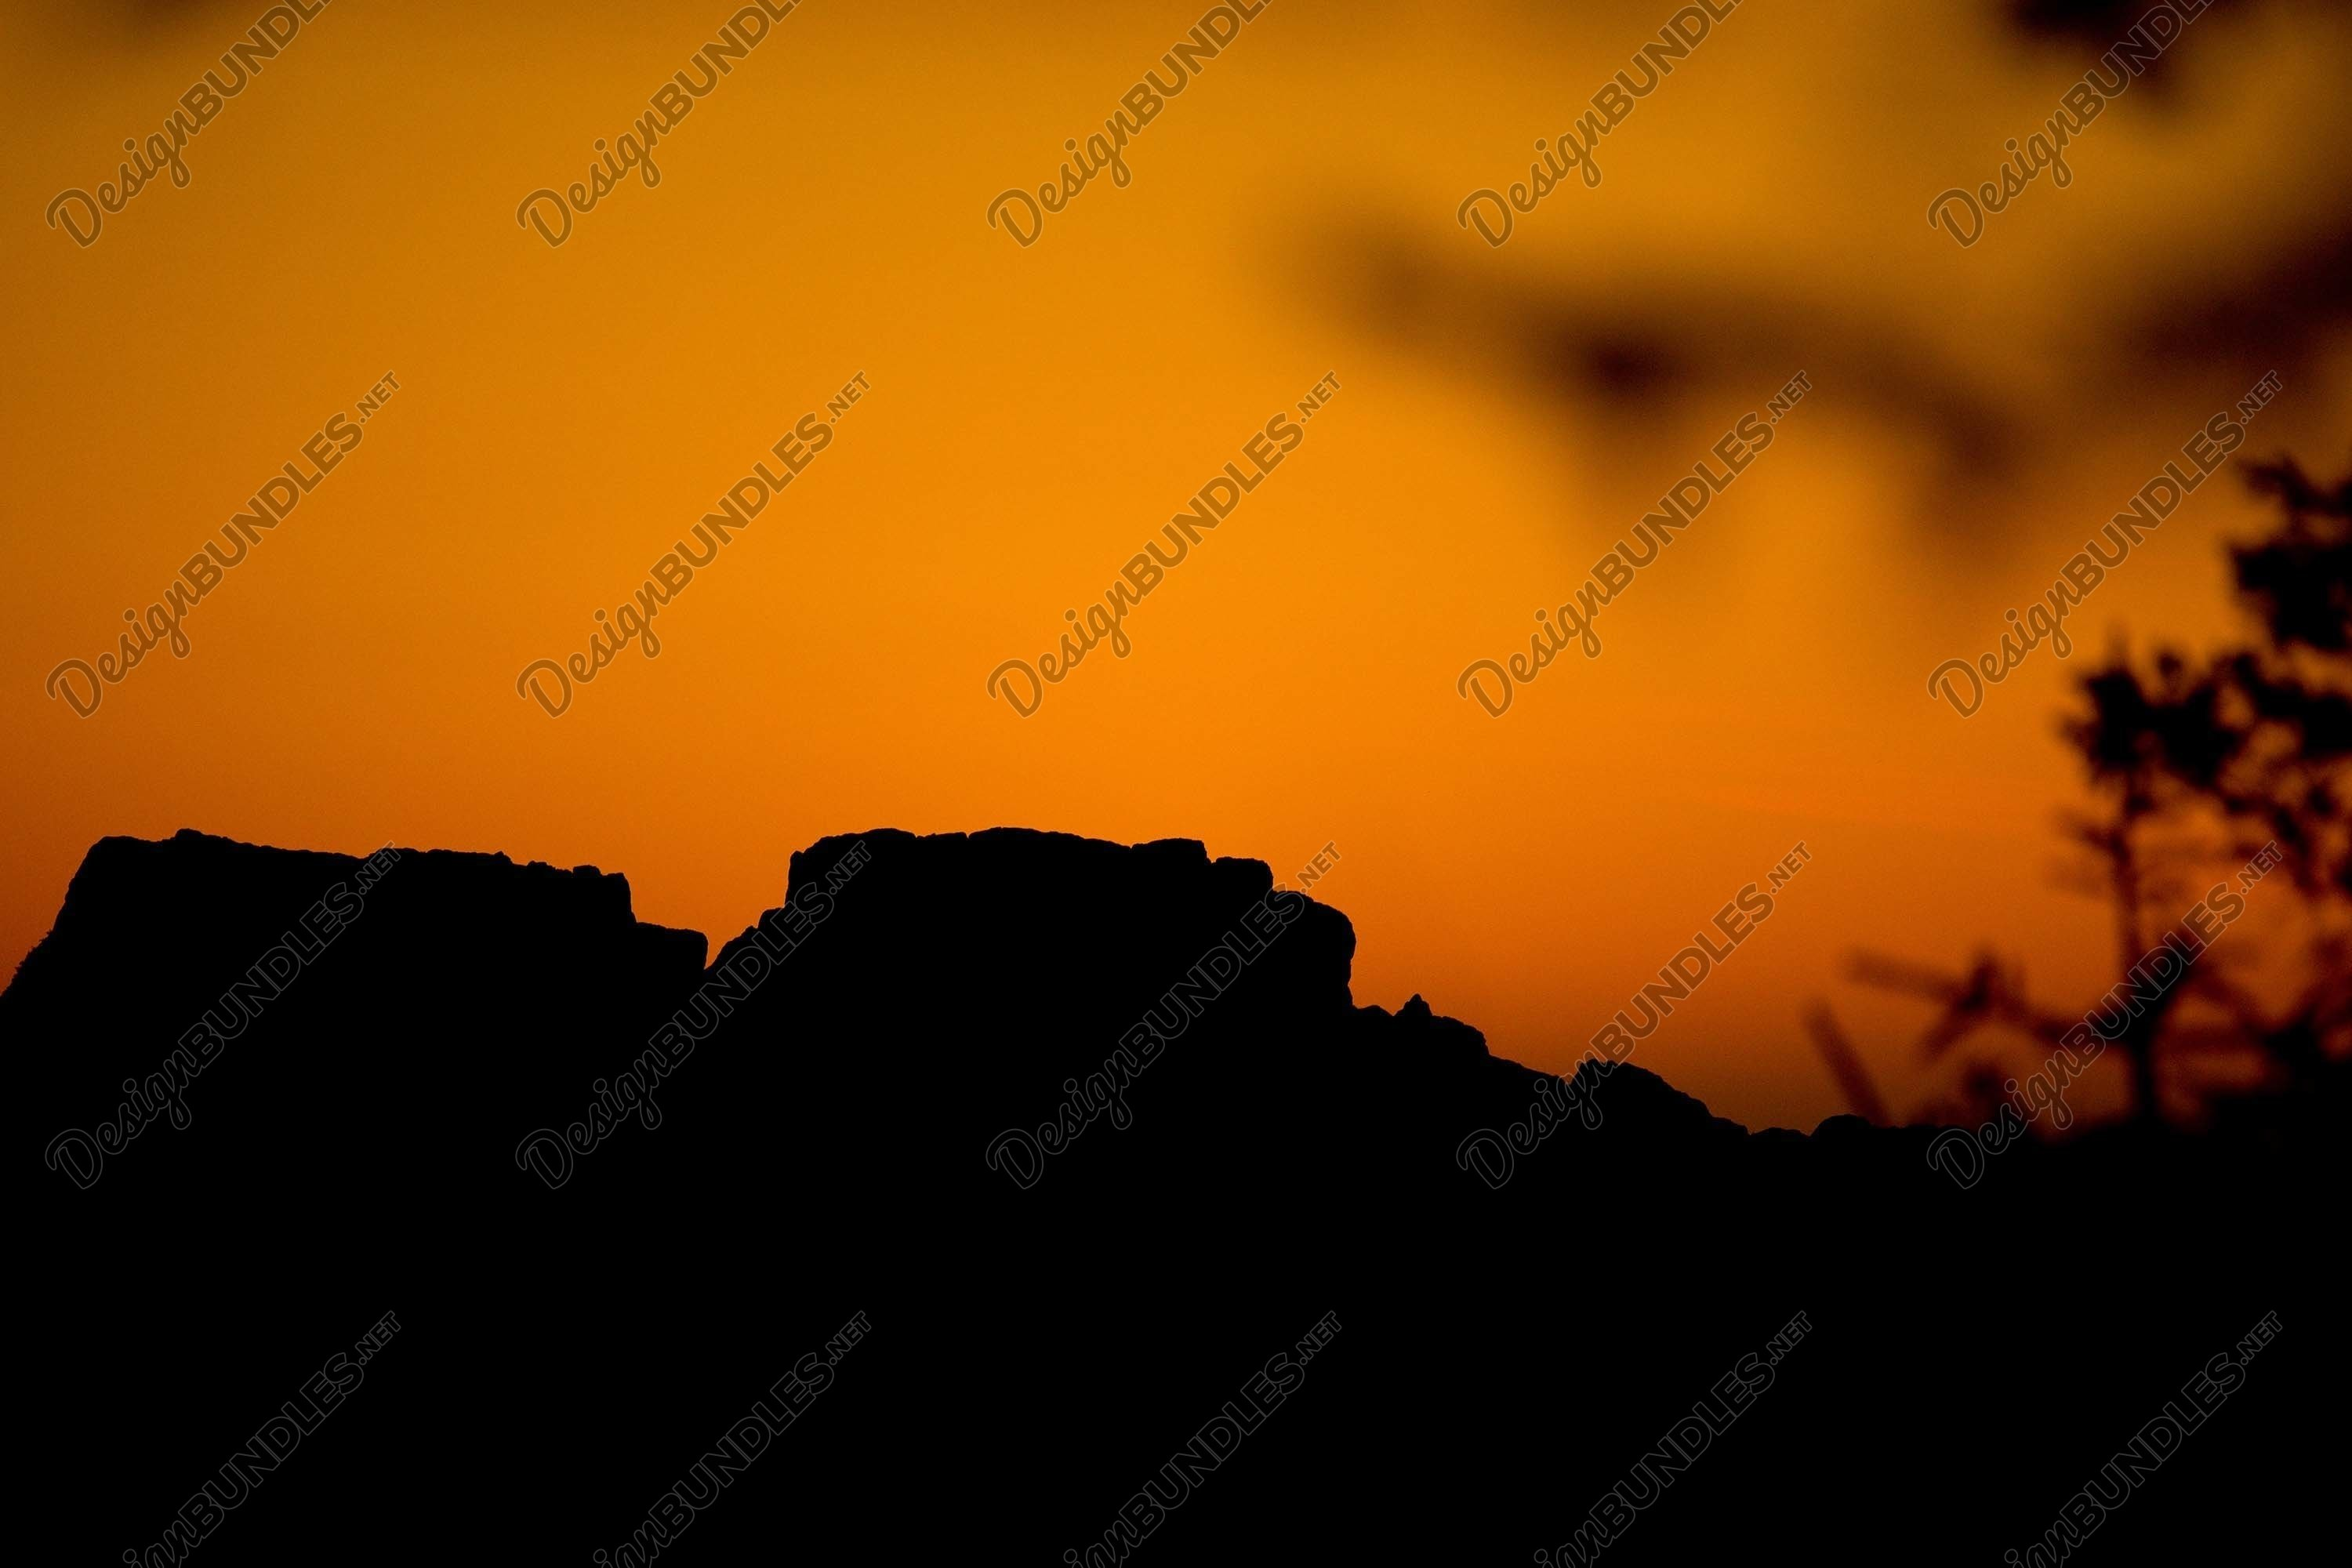 Stock Photo - The silhouette of trees at sunset example image 1